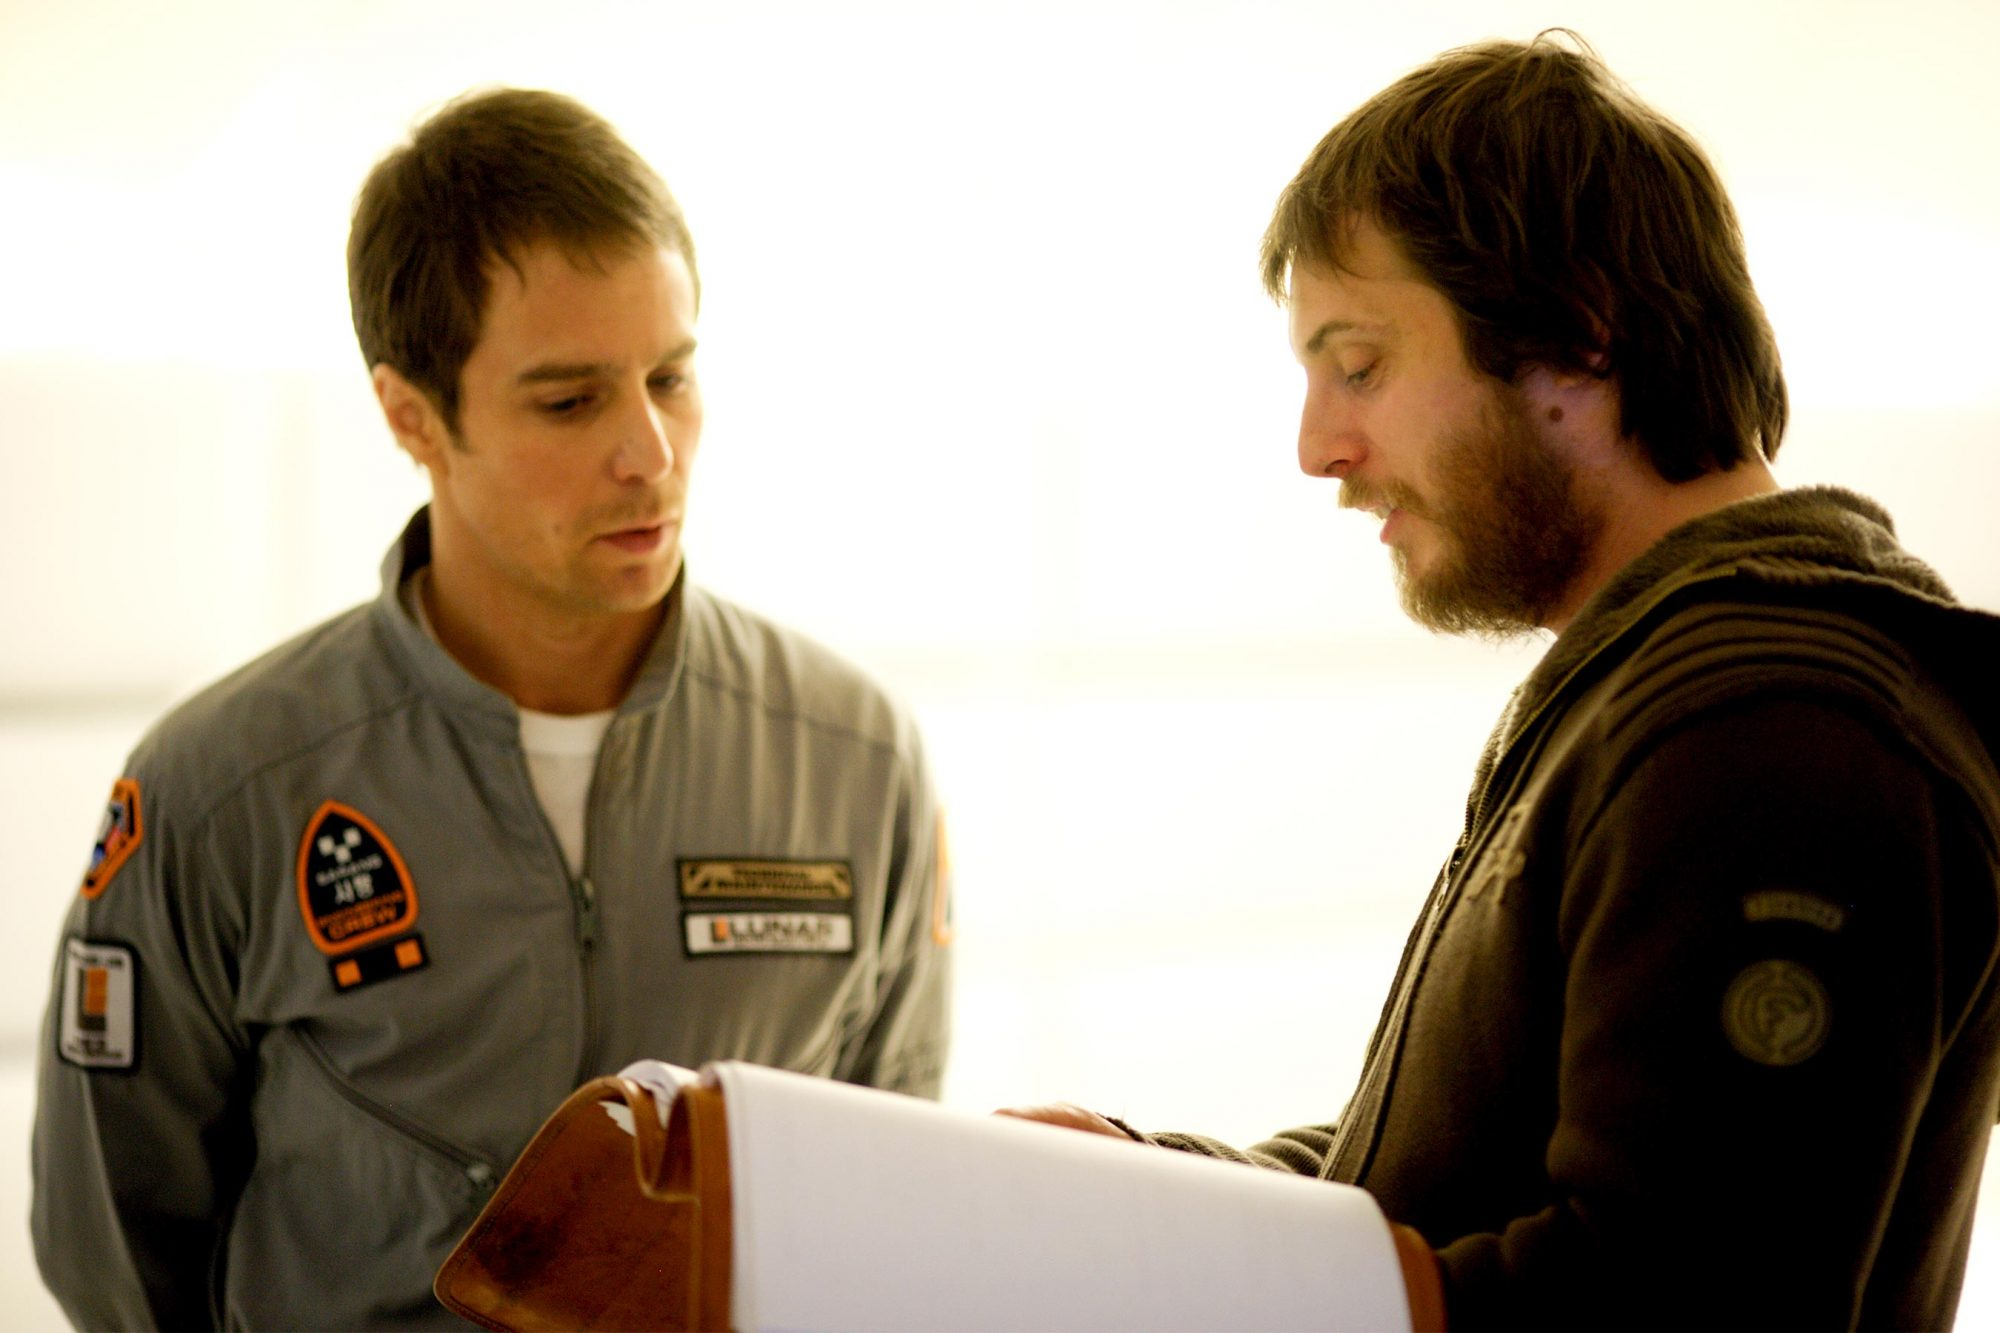 MOON, from left: Sam Rockwell, director Duncan Jones, on set, 2009. PH: Mark Tille/©Sony Pictures Classics/Courtesy Everett Collection